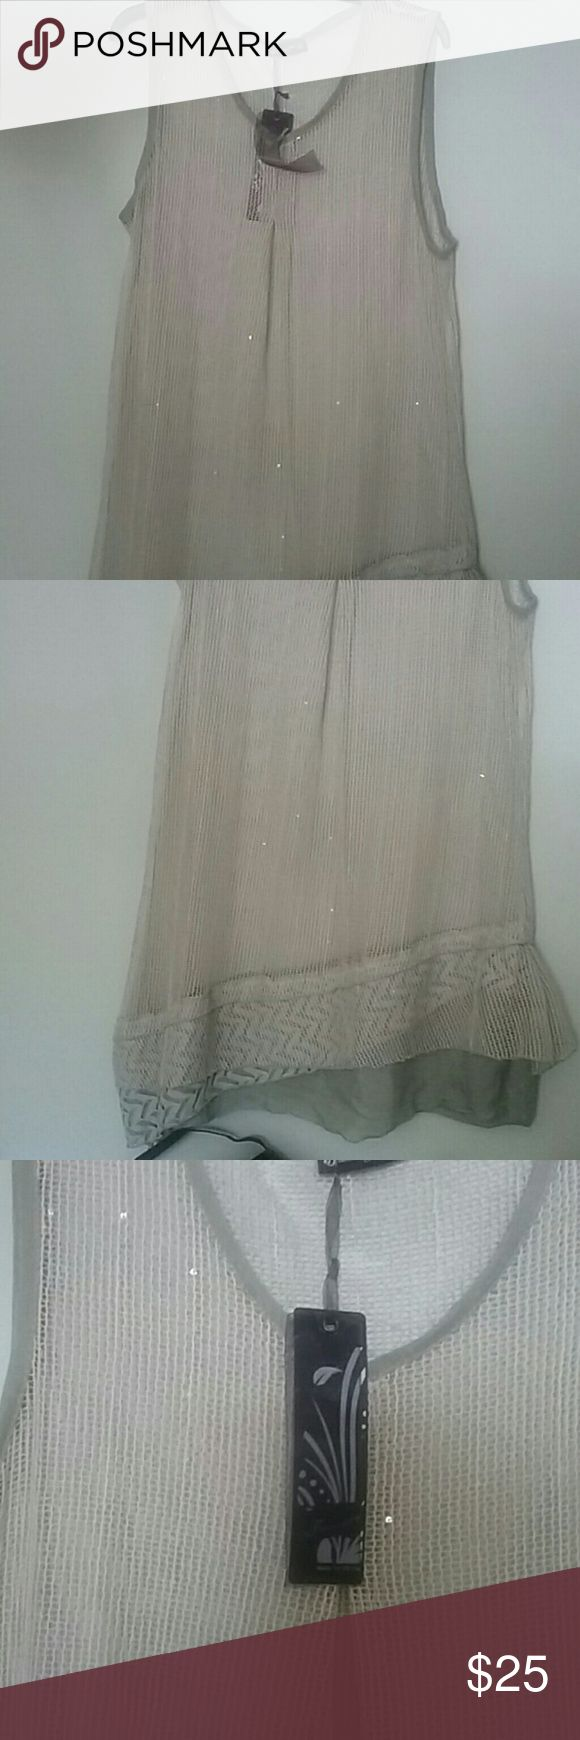 NWT Midi Dress/Tunic Size XL Beautiful  Gray see thru dress or tunic. Has sequins in scattered throughout the dress. It can be worn also as a bathing suit cover-up. Dress it up or down. The possibilities are endless. Firmianality Dresses Midi